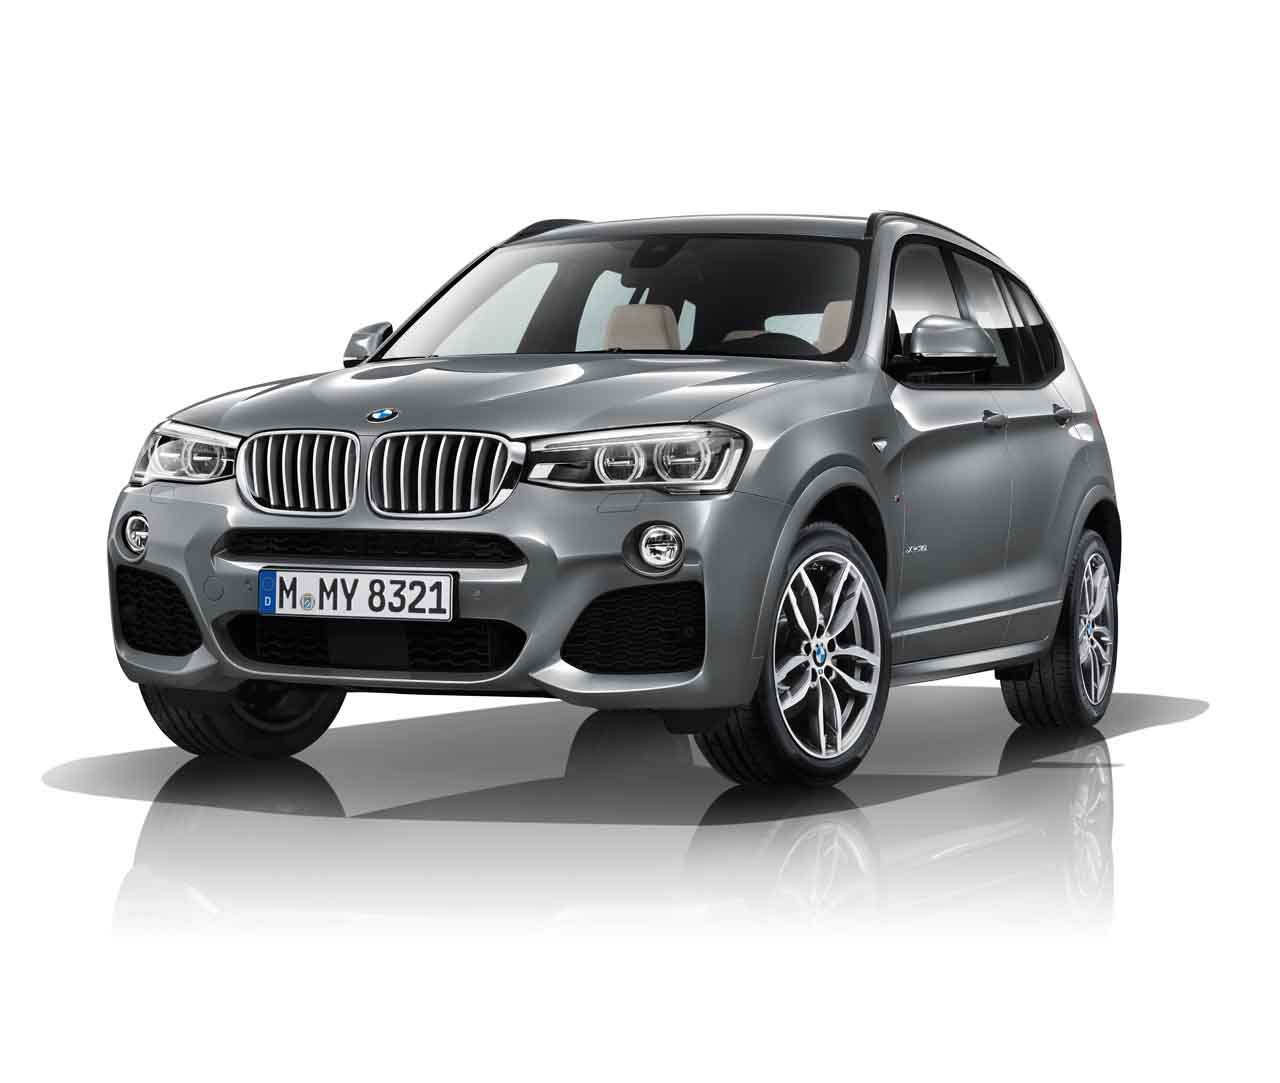 Bmw Xdrive35i Price: BMW X3 XDrive 35i 2016